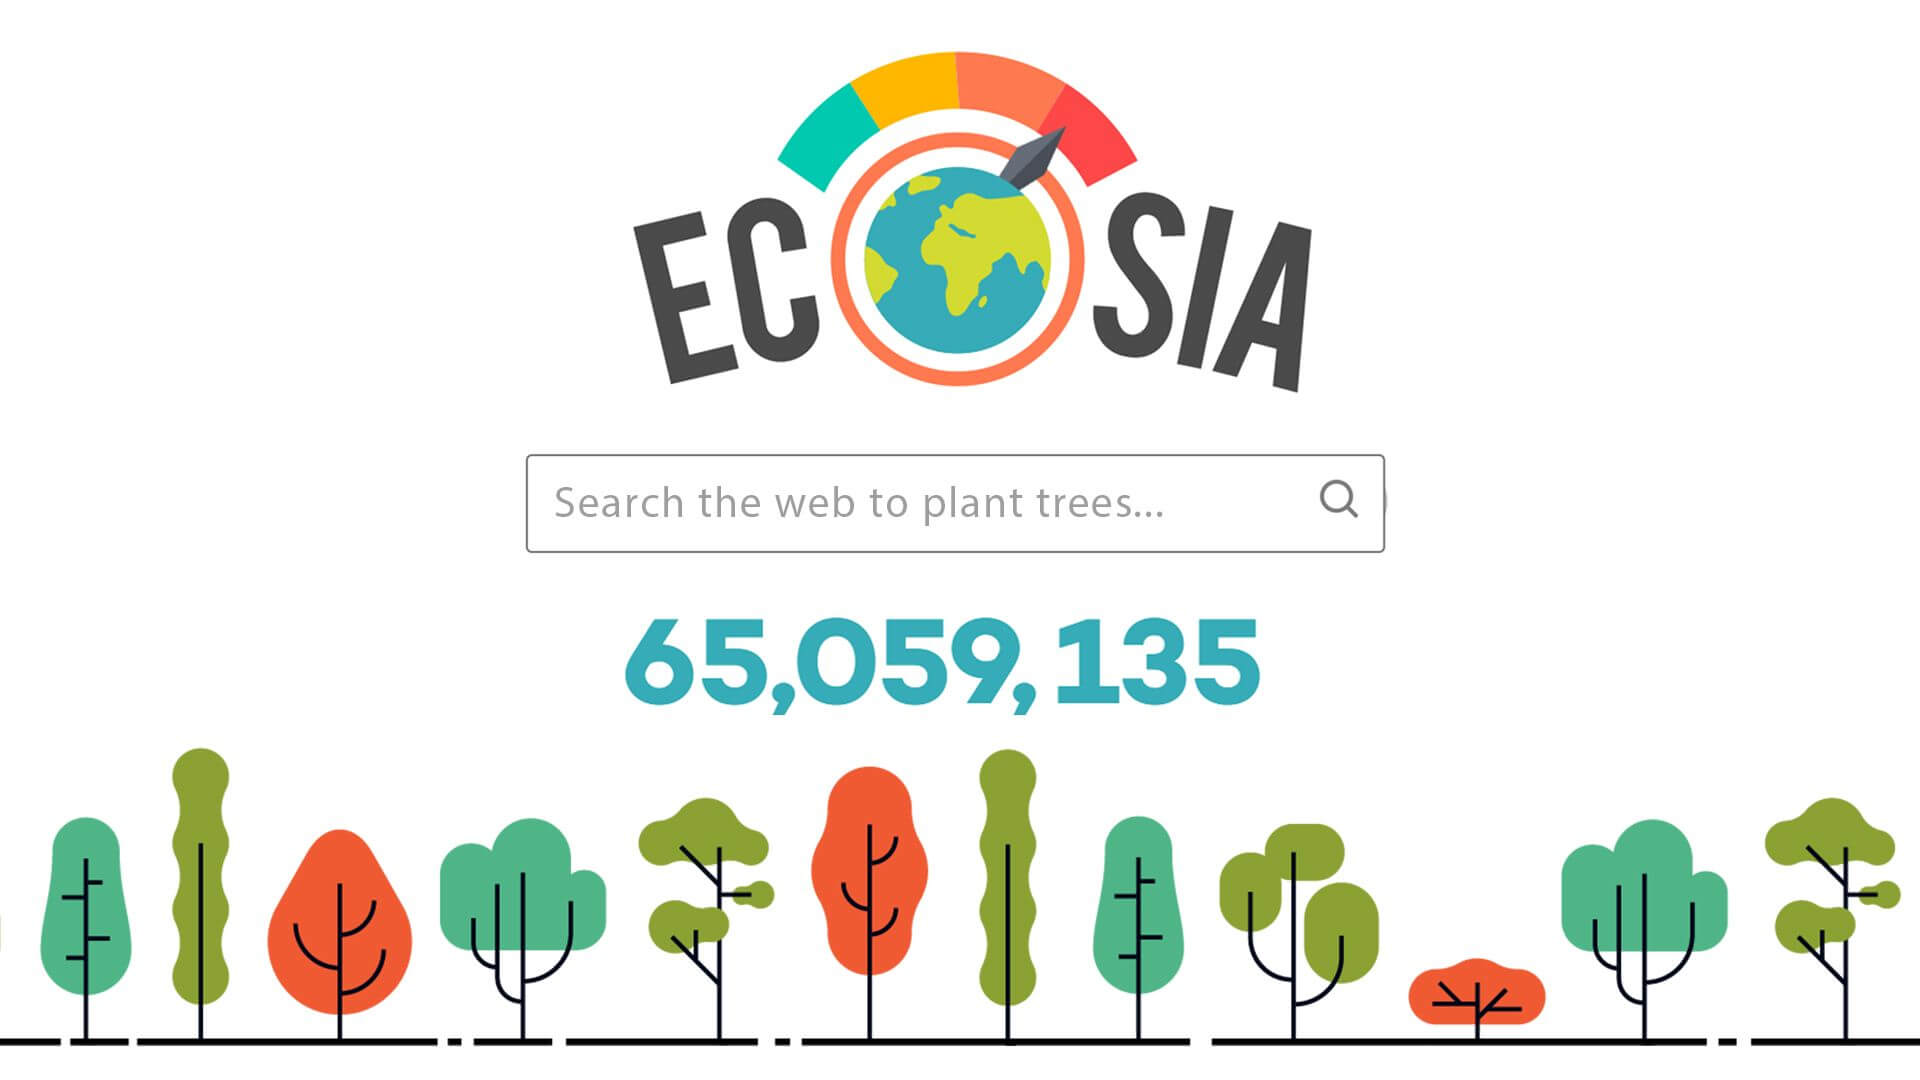 You Can Help Plant Trees Just By Surfing The Internet With Ecosia